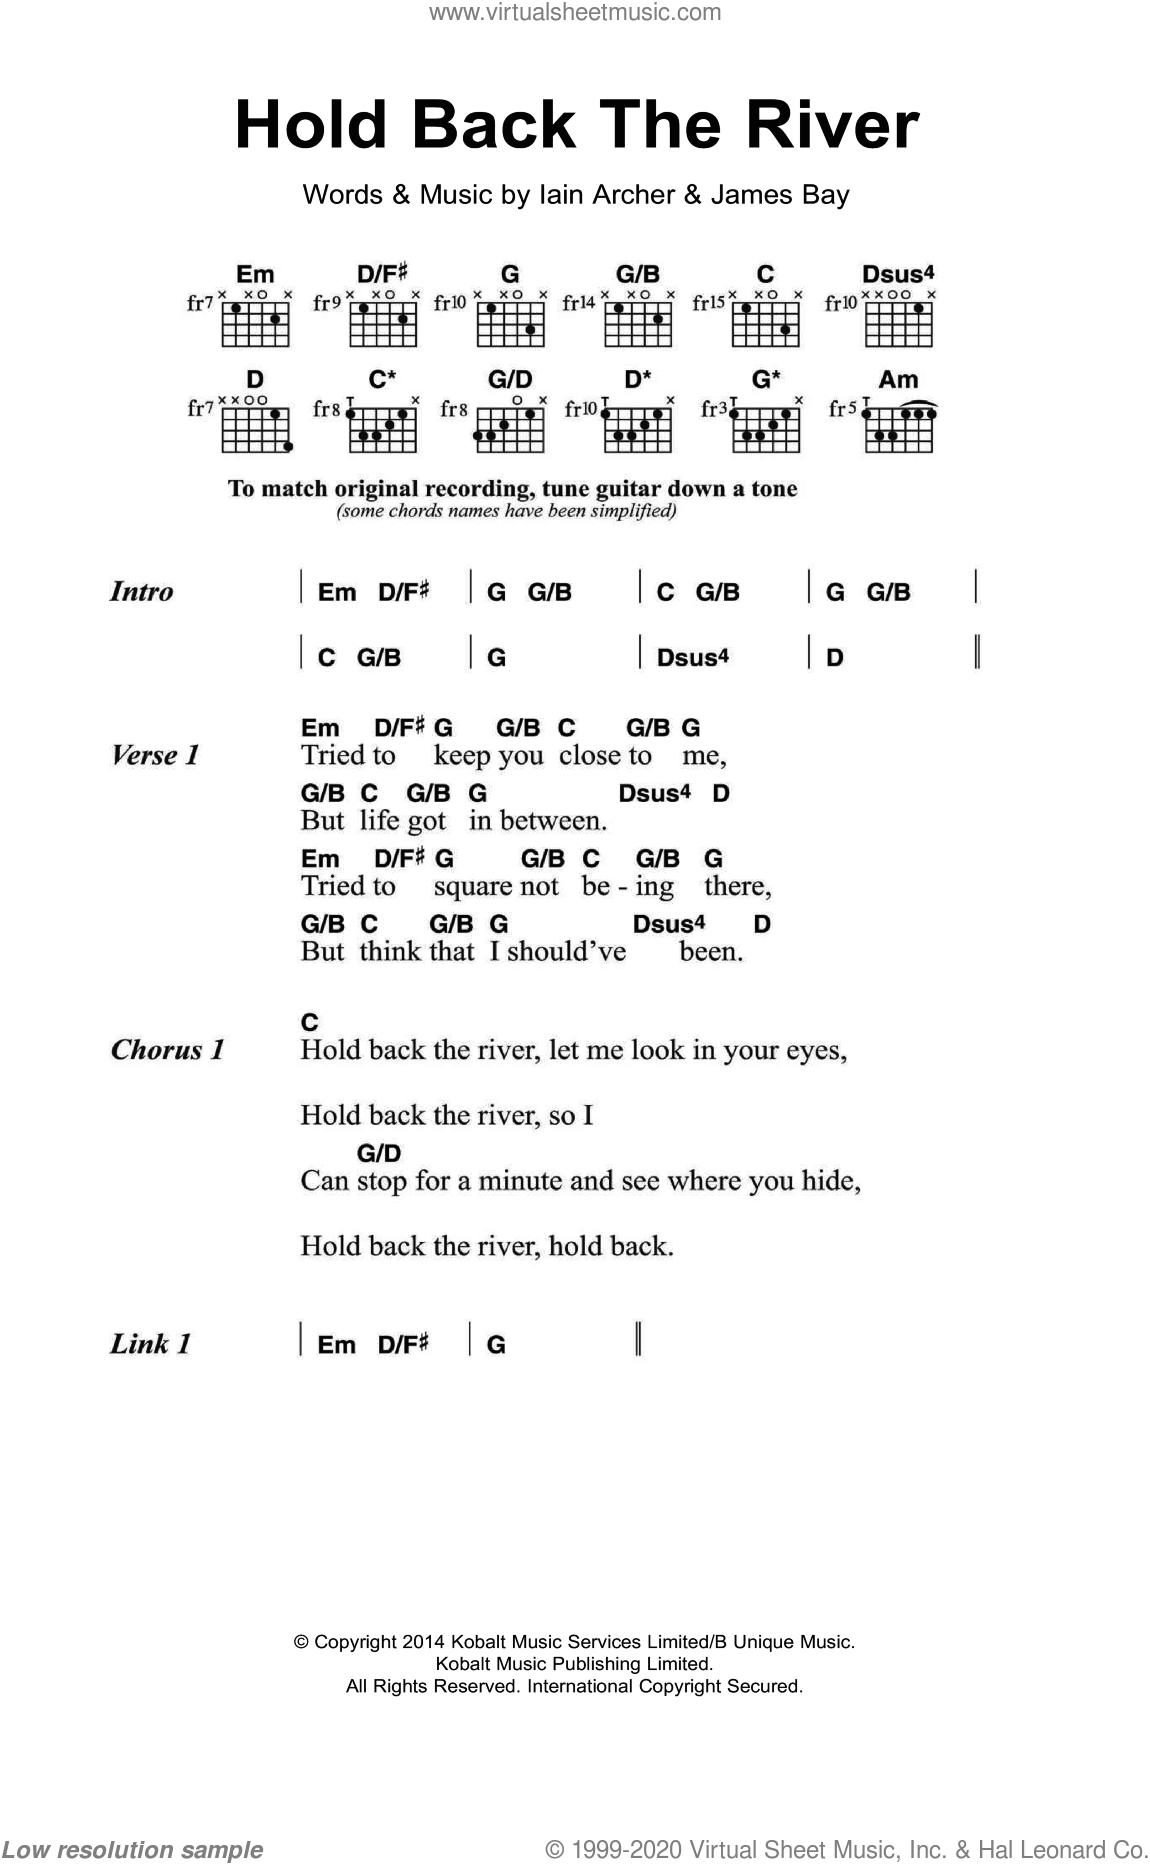 Hold Back The River sheet music for guitar (chords) by James Bay and Iain Archer, intermediate. Score Image Preview.